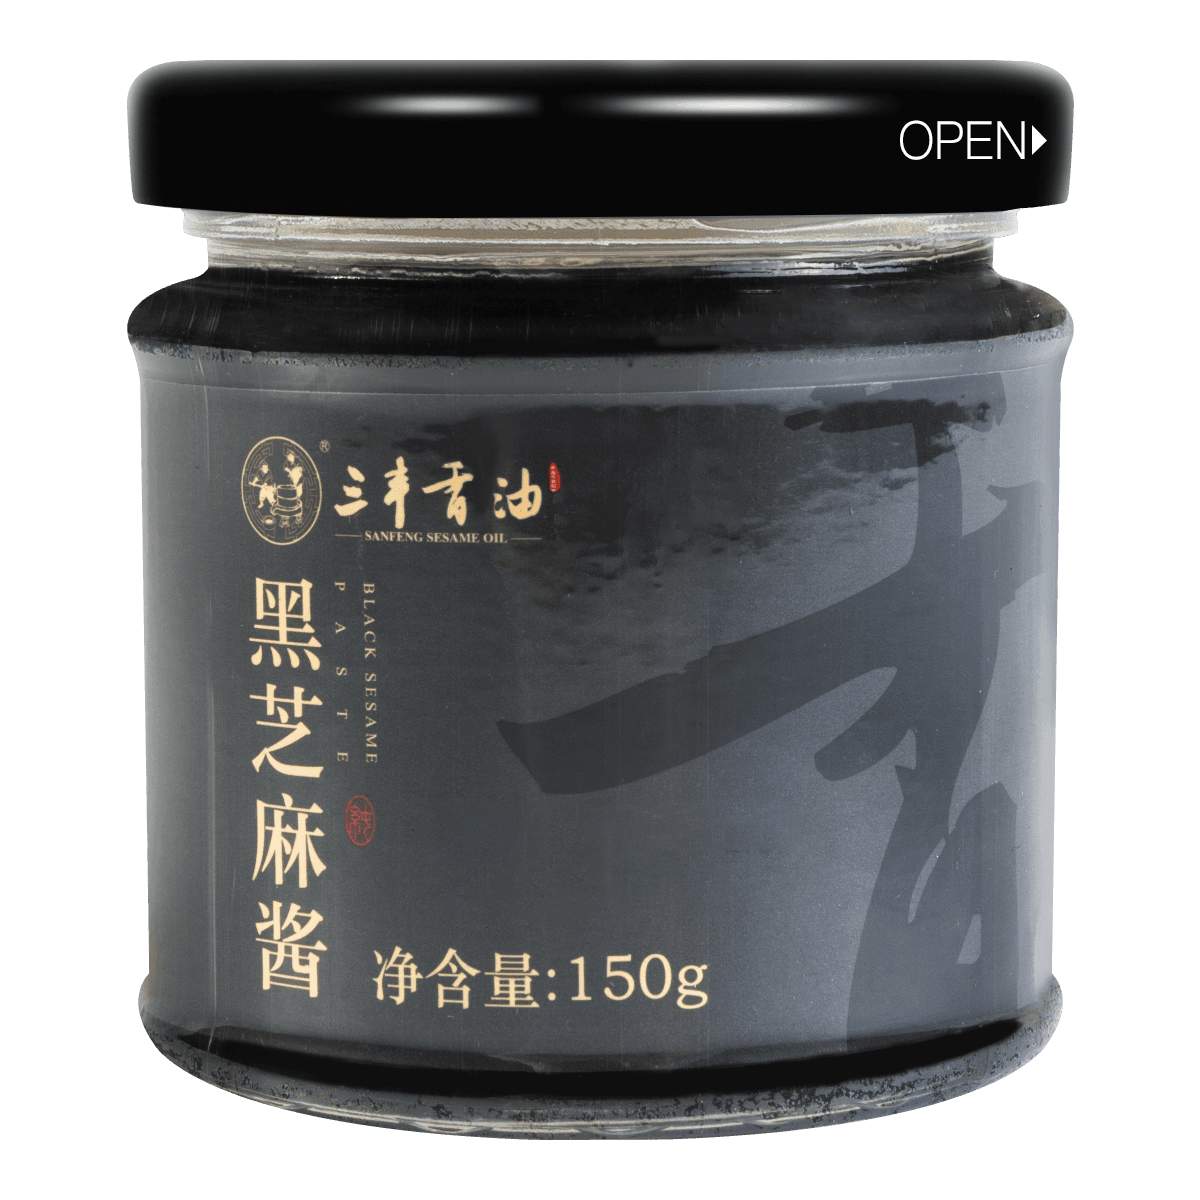 SANFENG SESAME OIL Black Sesame Paste 150g